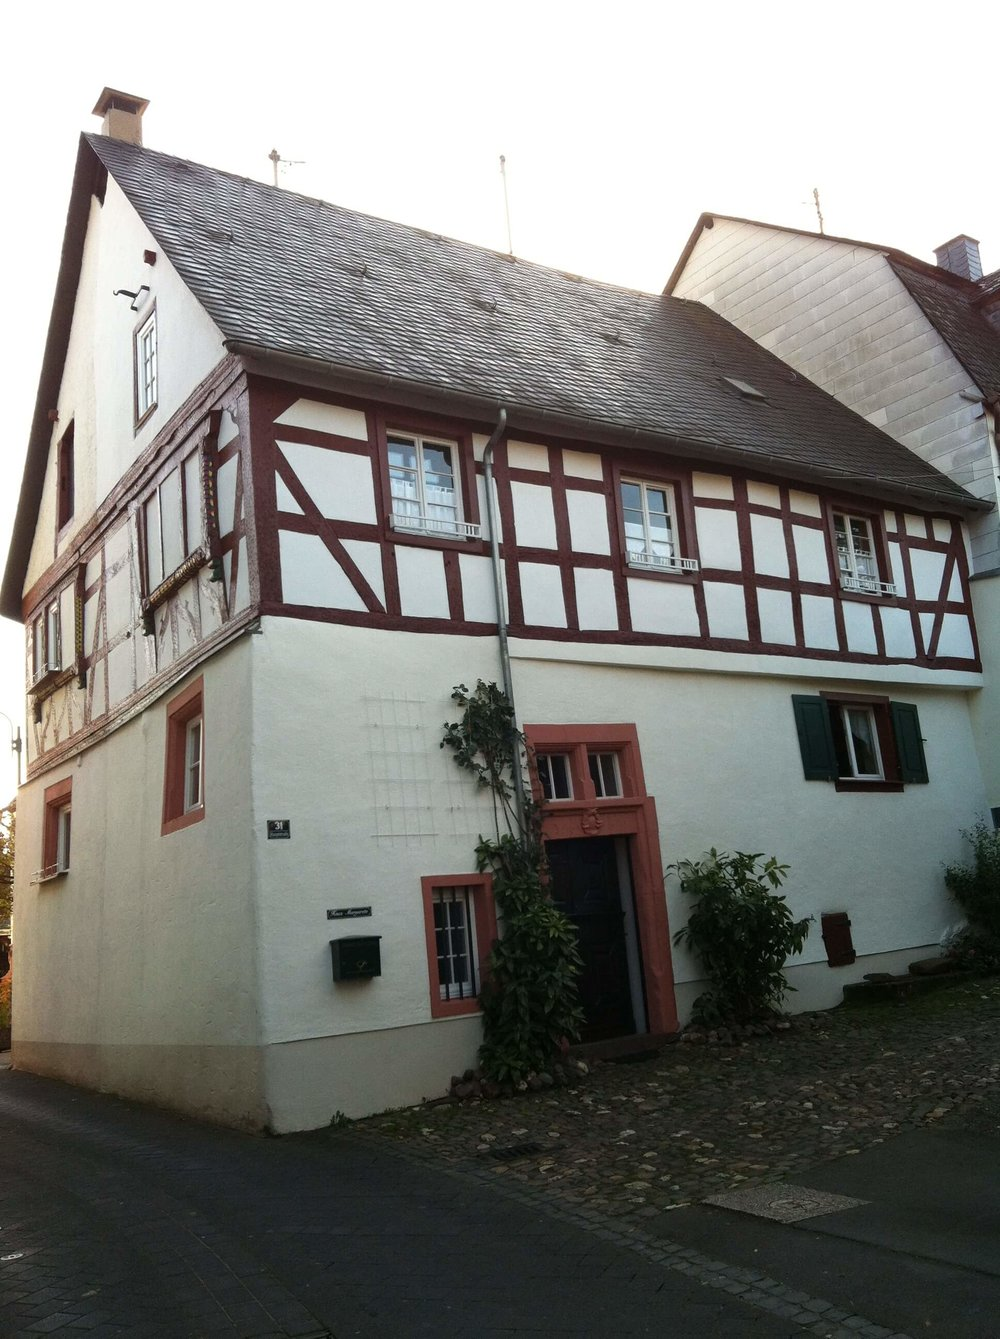 Our place for the weekend in small town Germany.